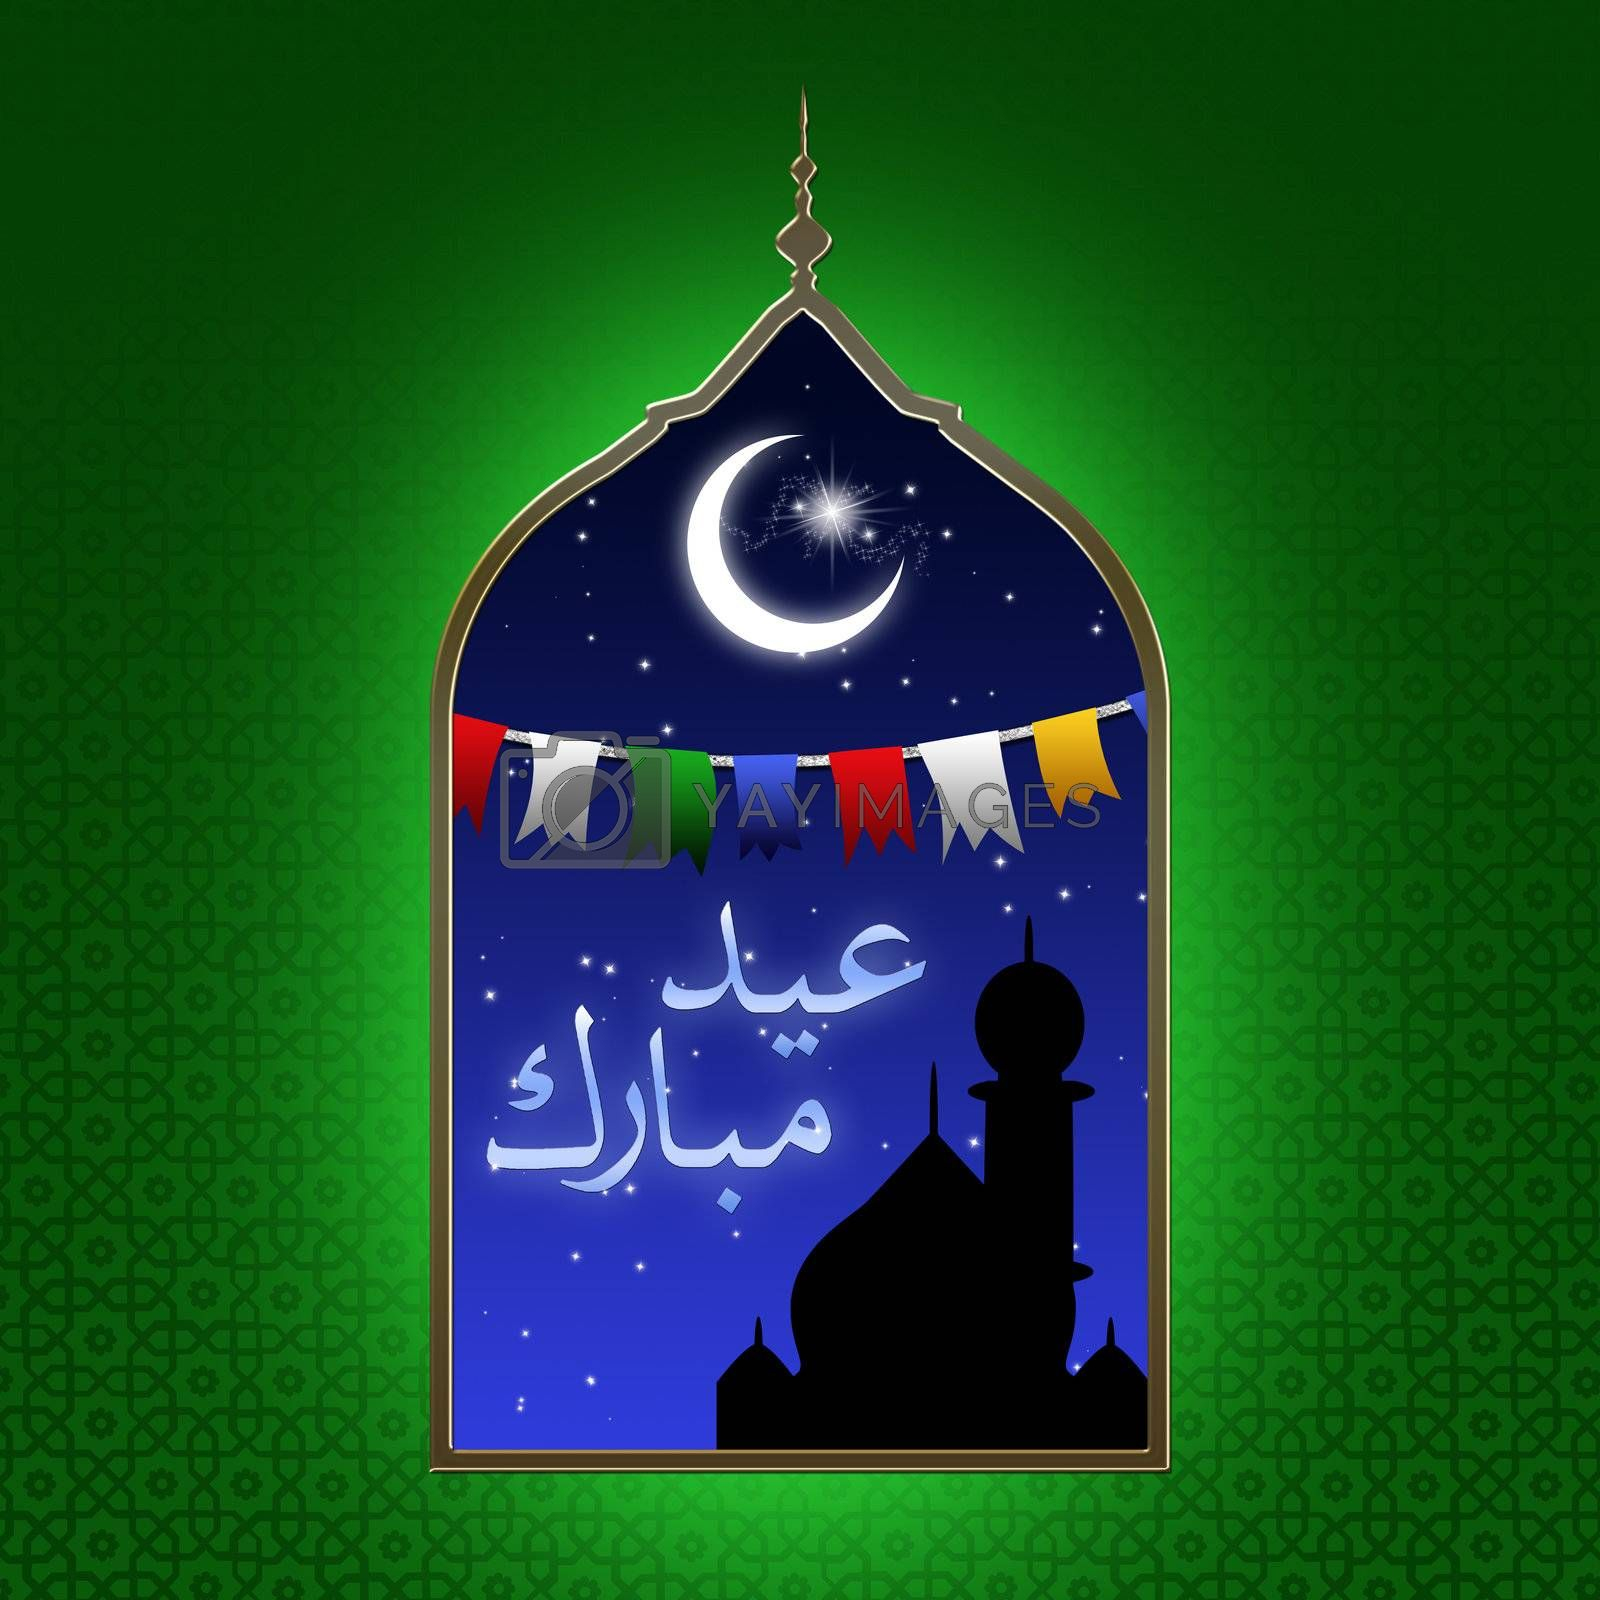 Eid illustration with a festive night scene: a colorful garland, the moon and stars and a silhouette of a mosque displayed in an arabic window on a green patterned background.